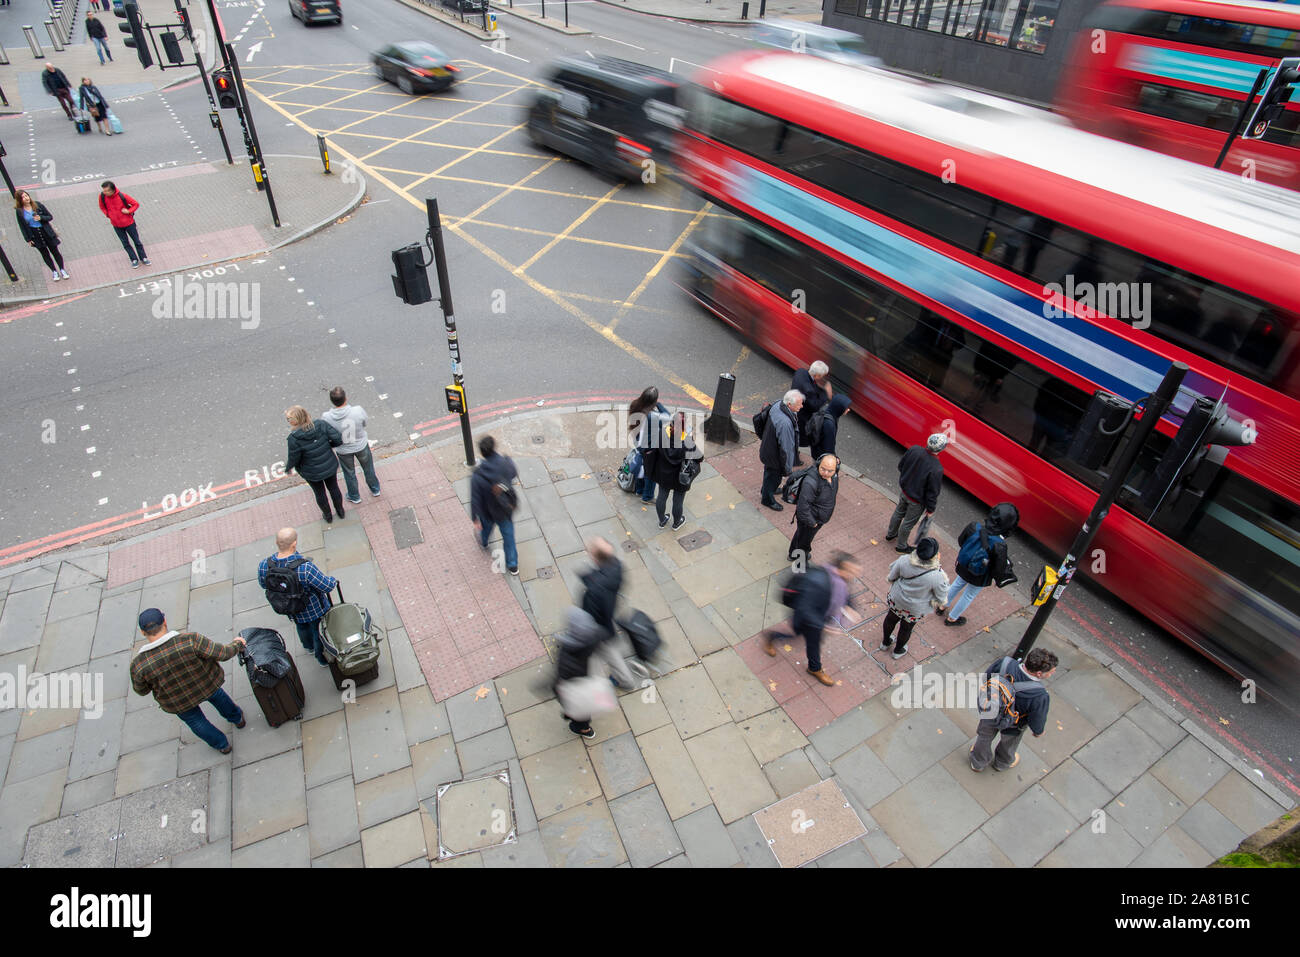 London, United Kingdom - November 5, 2019: People moving in all directions outside St. Pancras Station on a cloudy day. Stock Photo